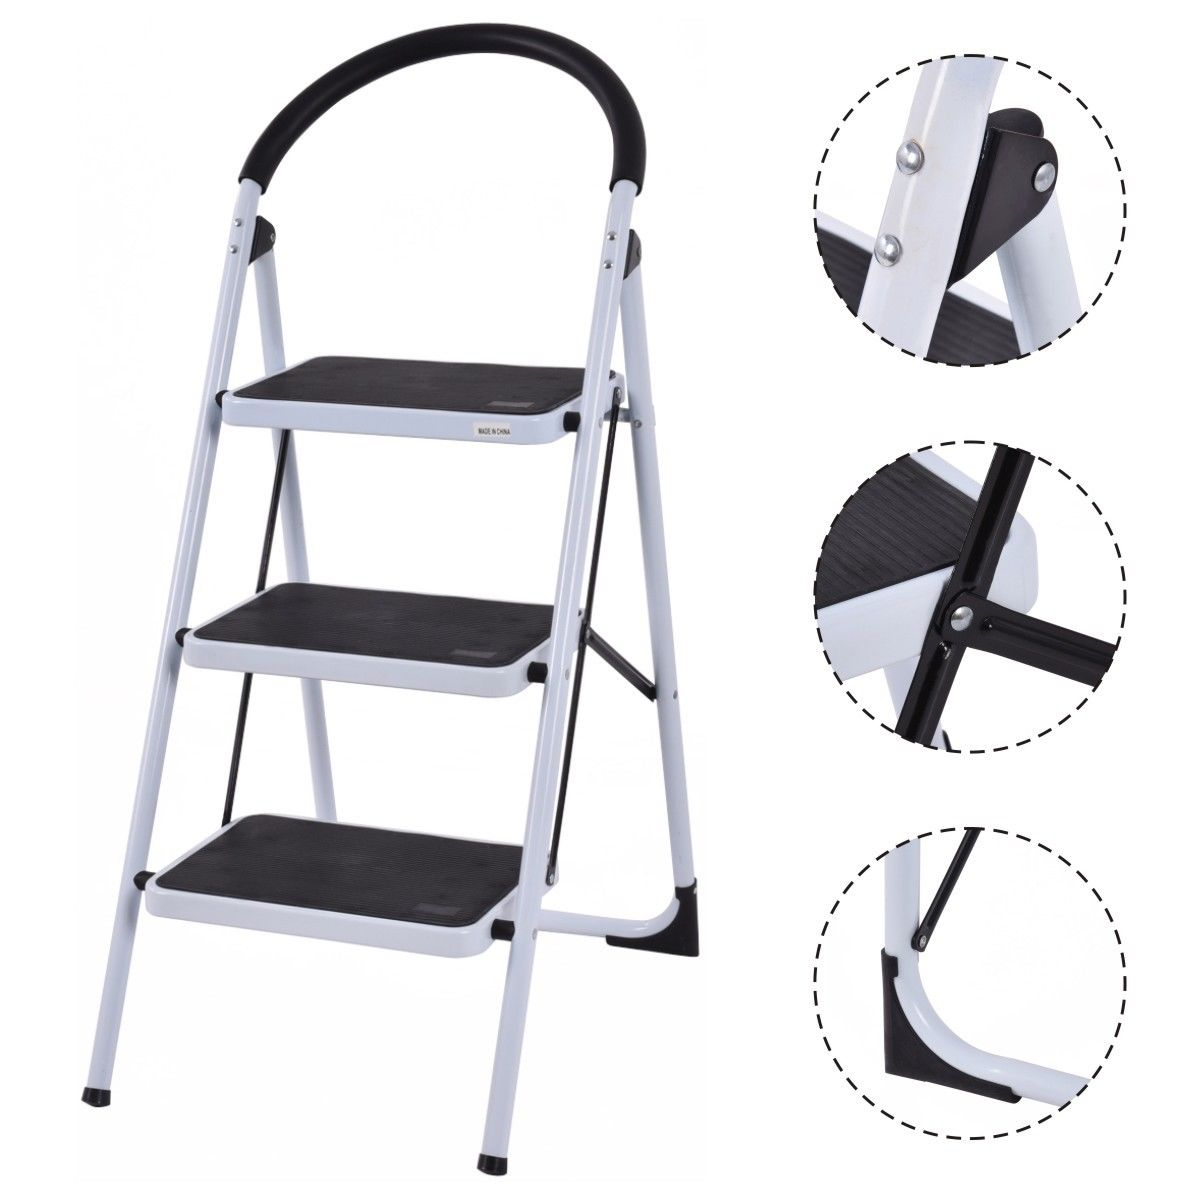 Costway 3 Step Ladder Folding Stool Heavy Duty 330Lbs Capacity Industrial Lightweight by Costway